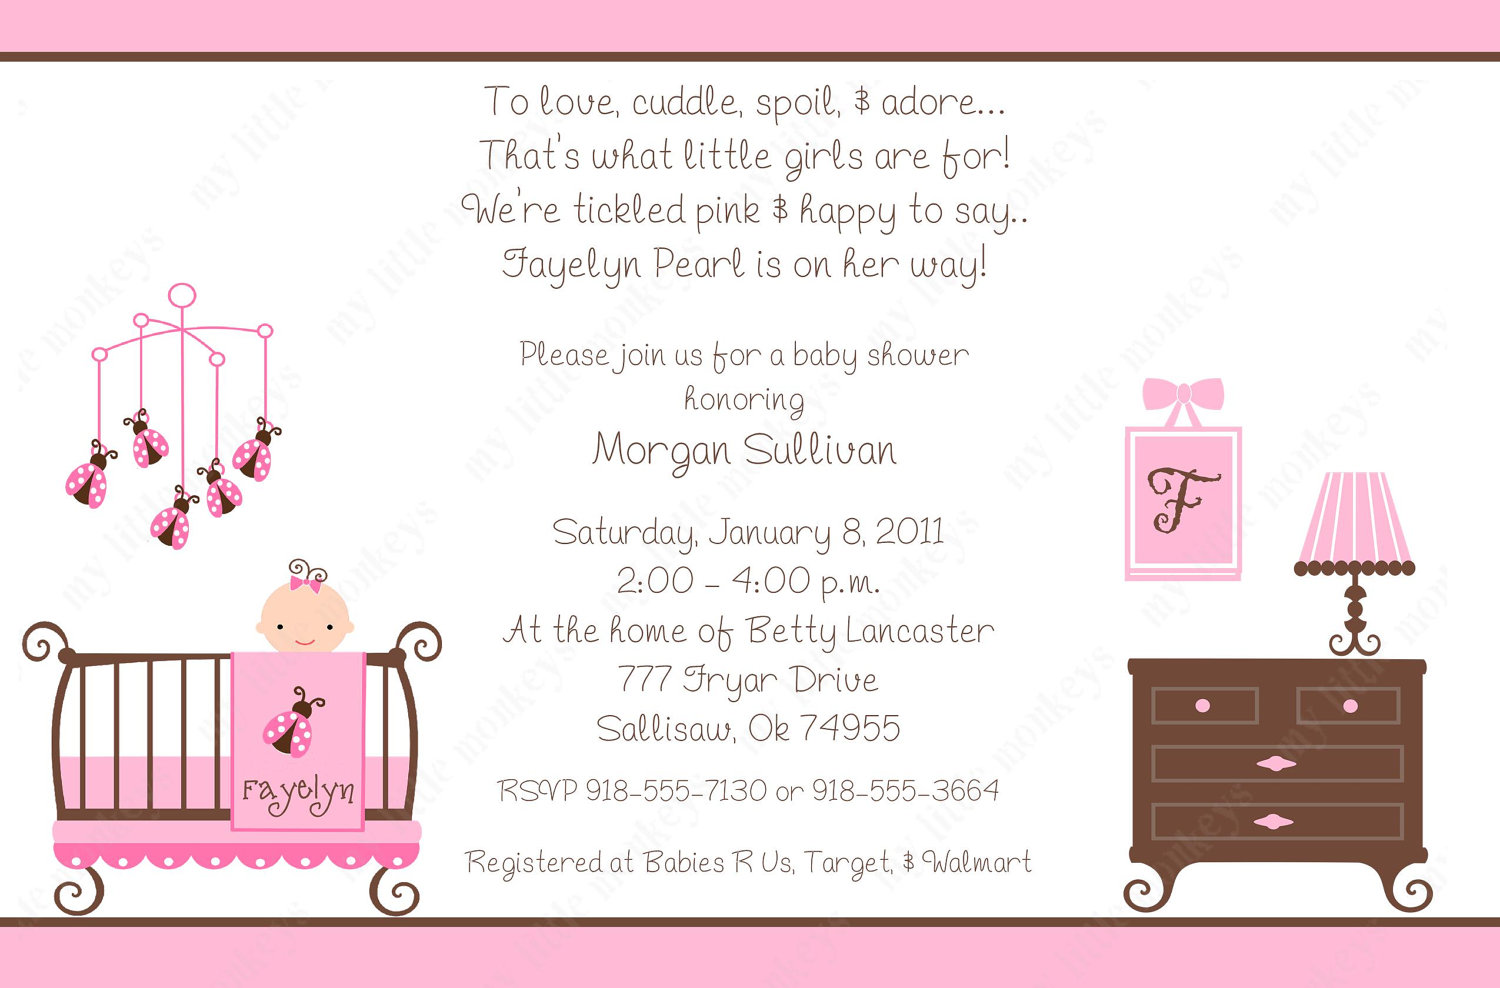 Full Size of Baby Shower:baby Shower Invitations Baby Girl Themes For Baby Shower Baby Shower Themes Baby Shower Ideas Baby Shower Decorations Printable Baby Shower Invitations For Girl